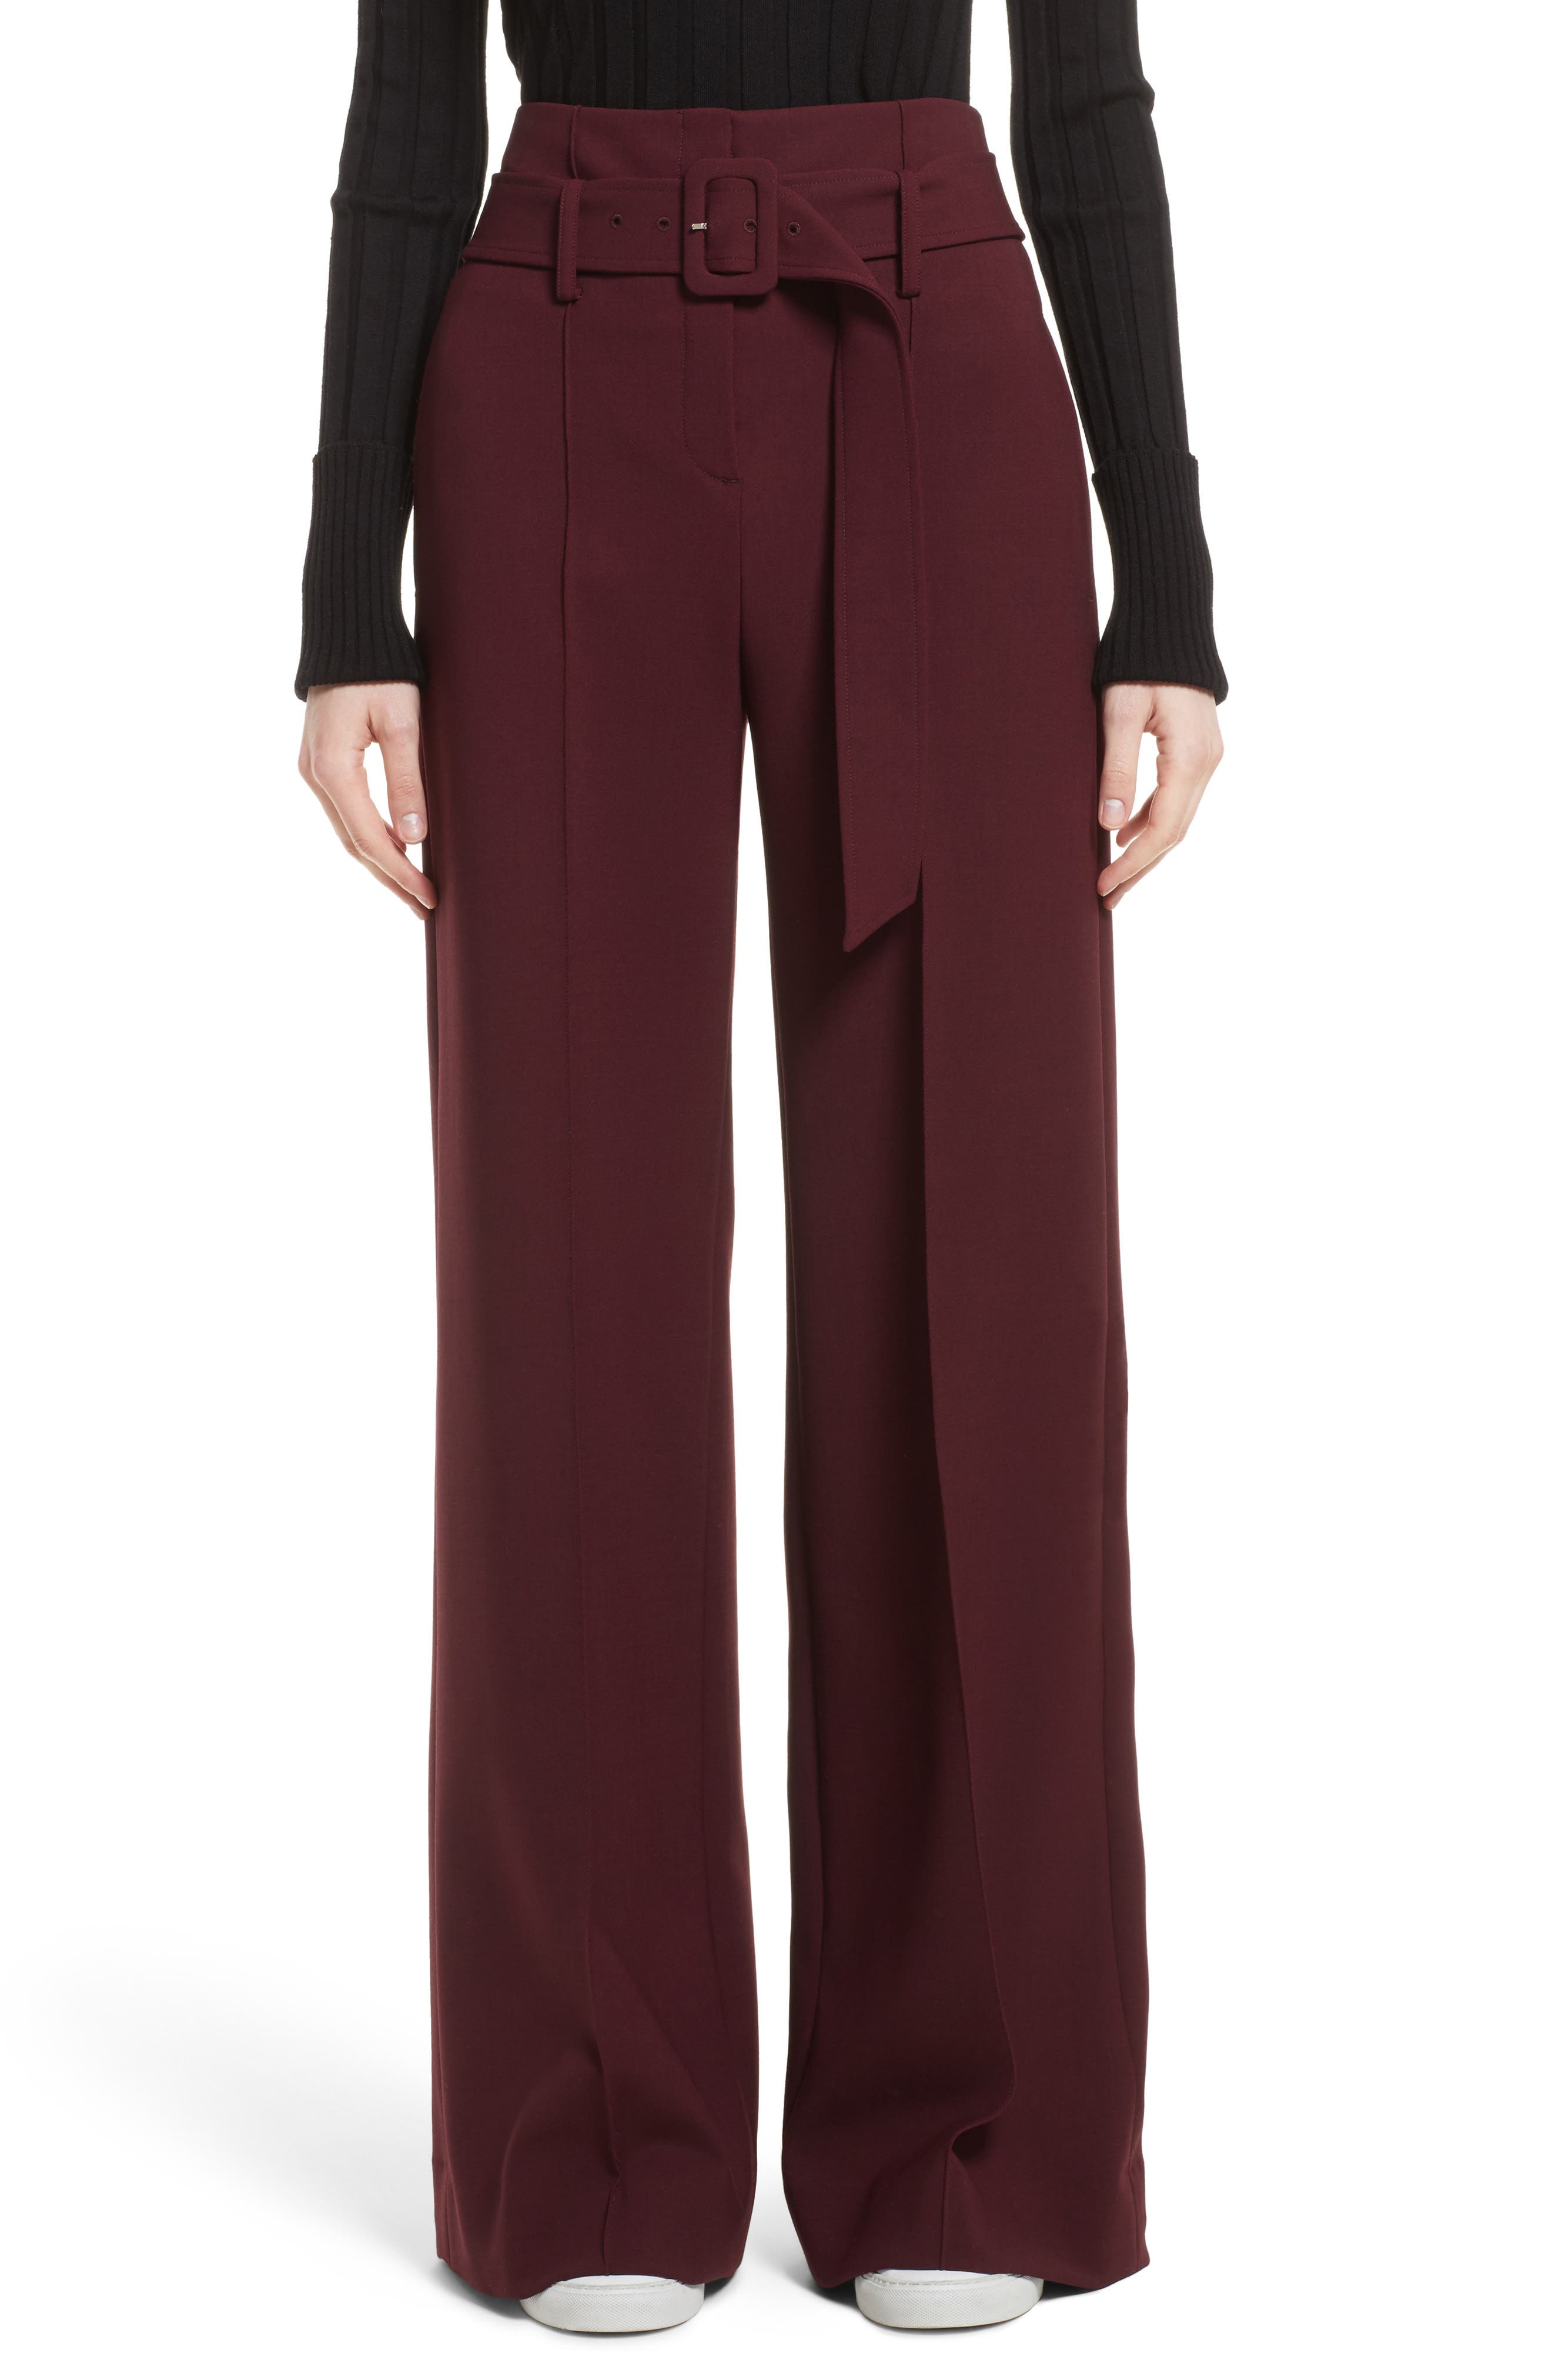 Camogie High Waist Belted Pants,                             Main thumbnail 1, color,                             933